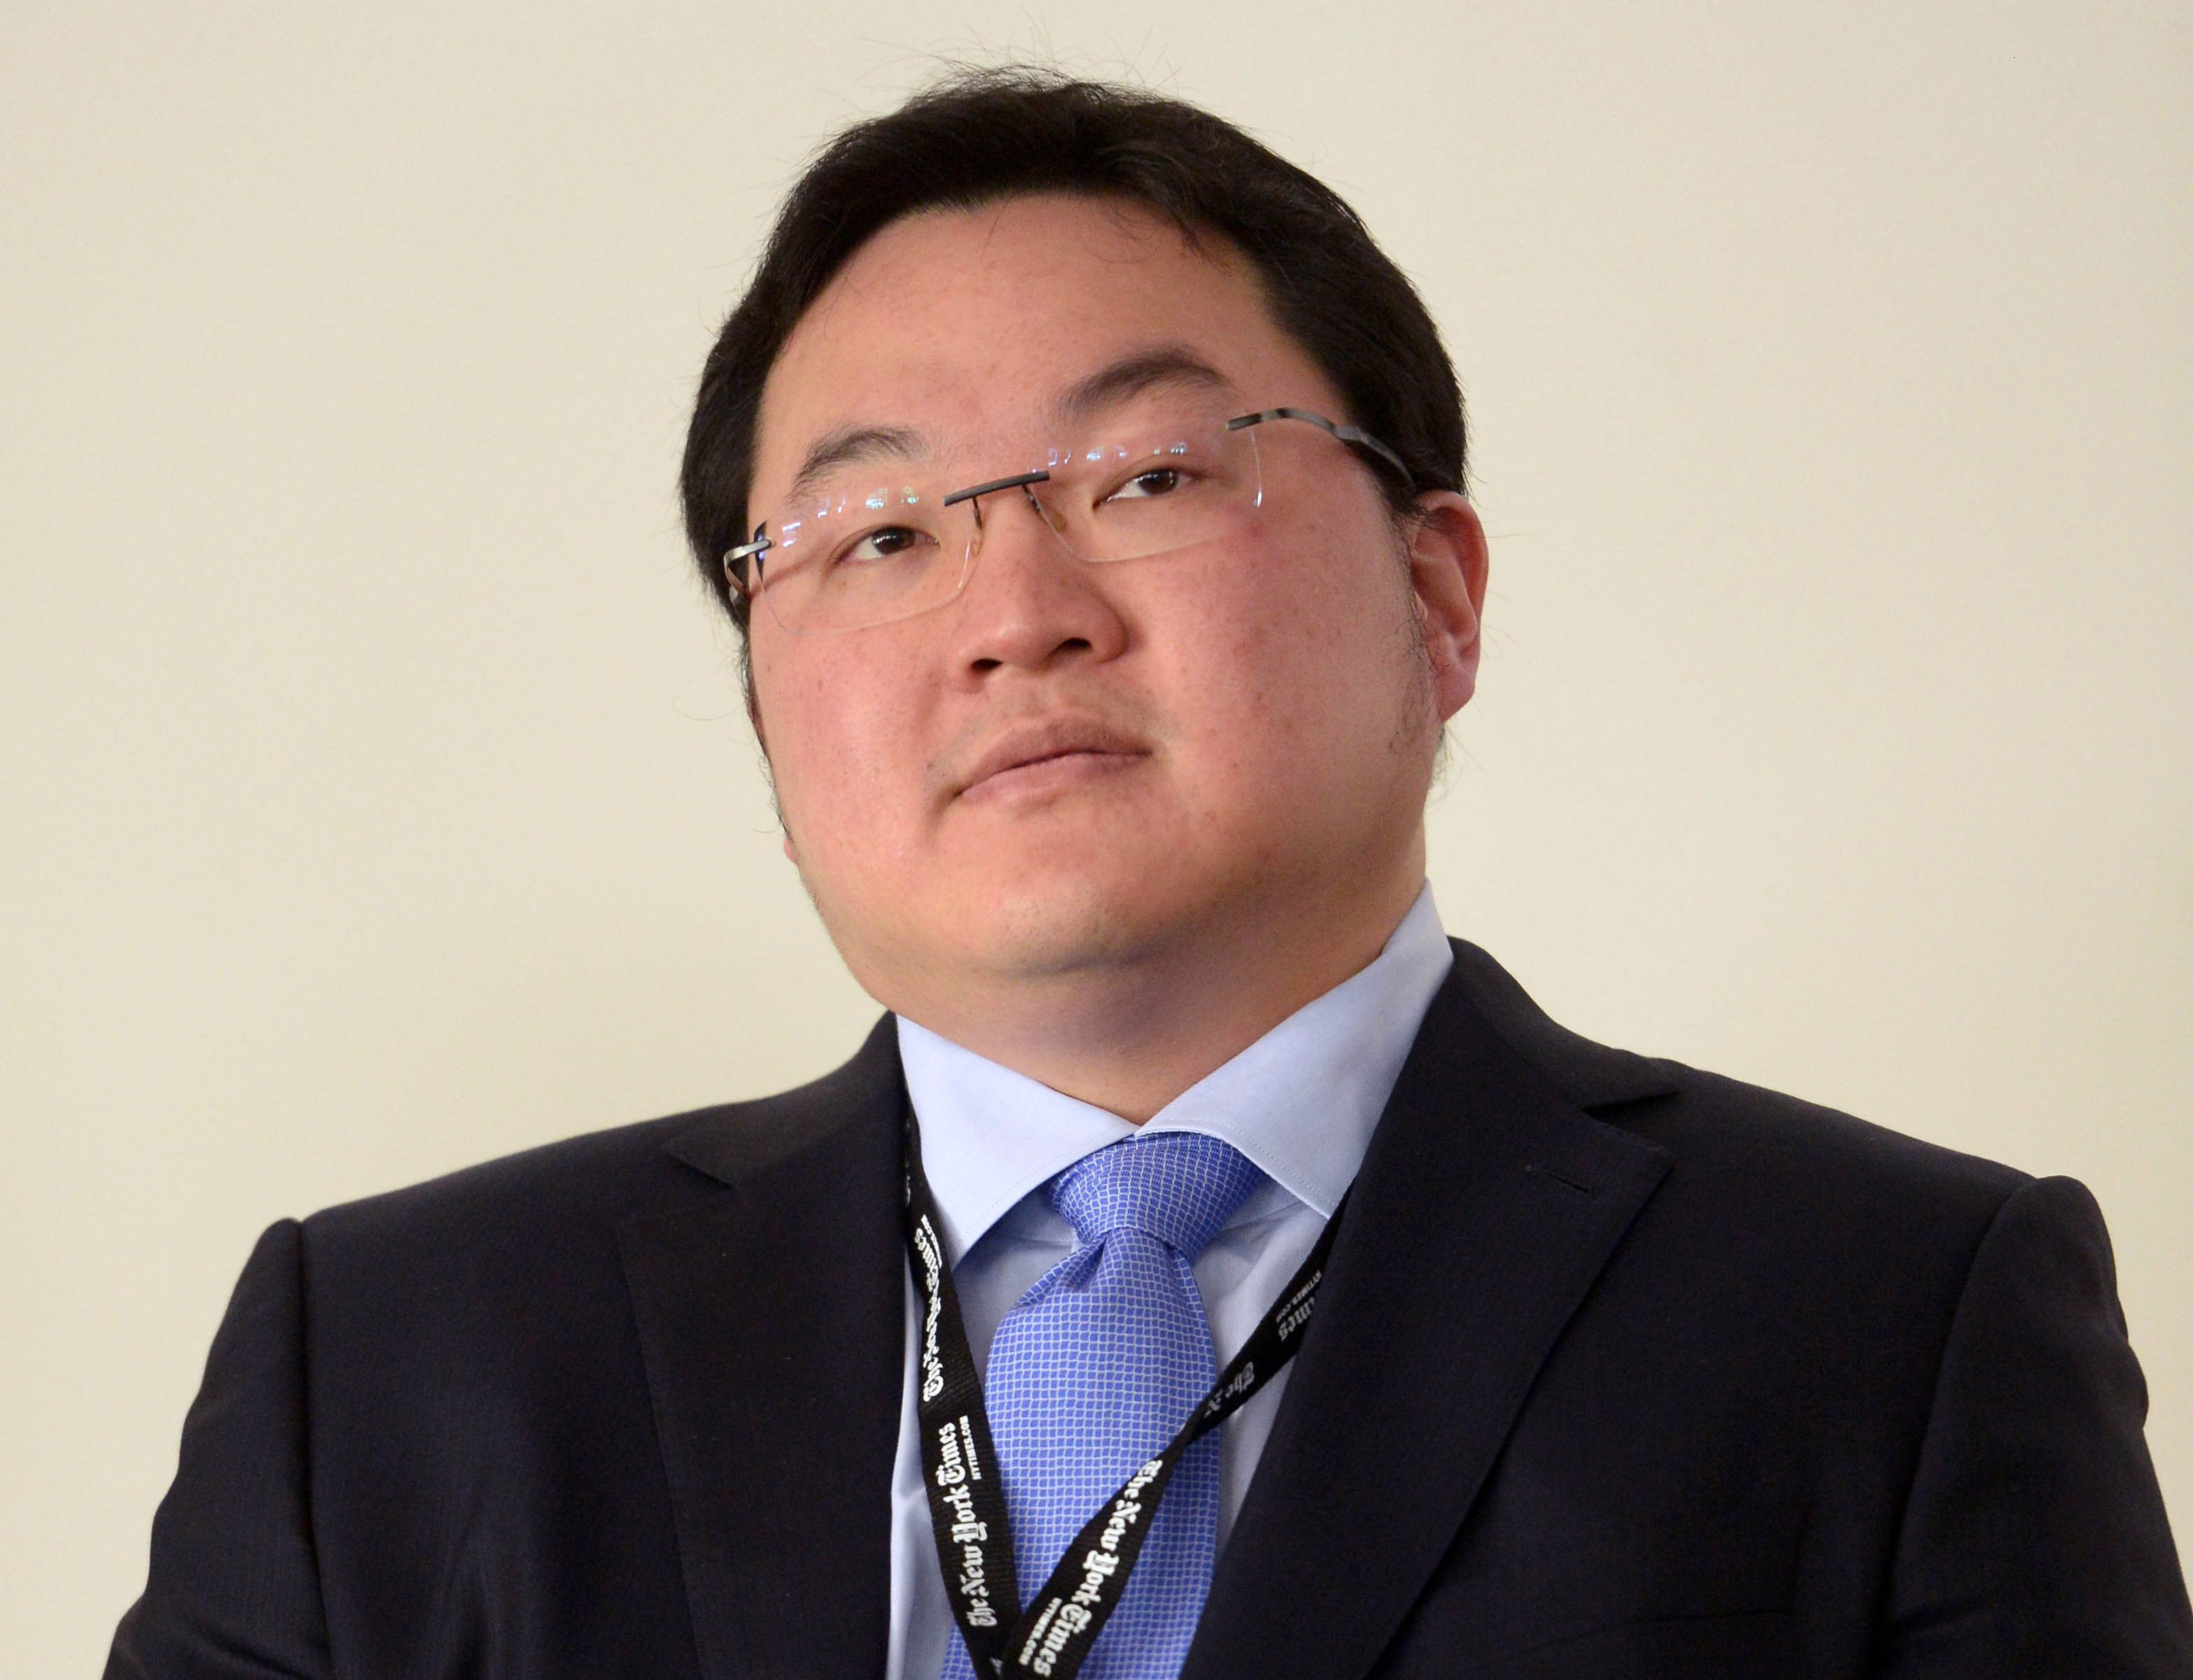 Malaysia Lacking Foreign Help in Hunt for Jho Low, Kini Reports